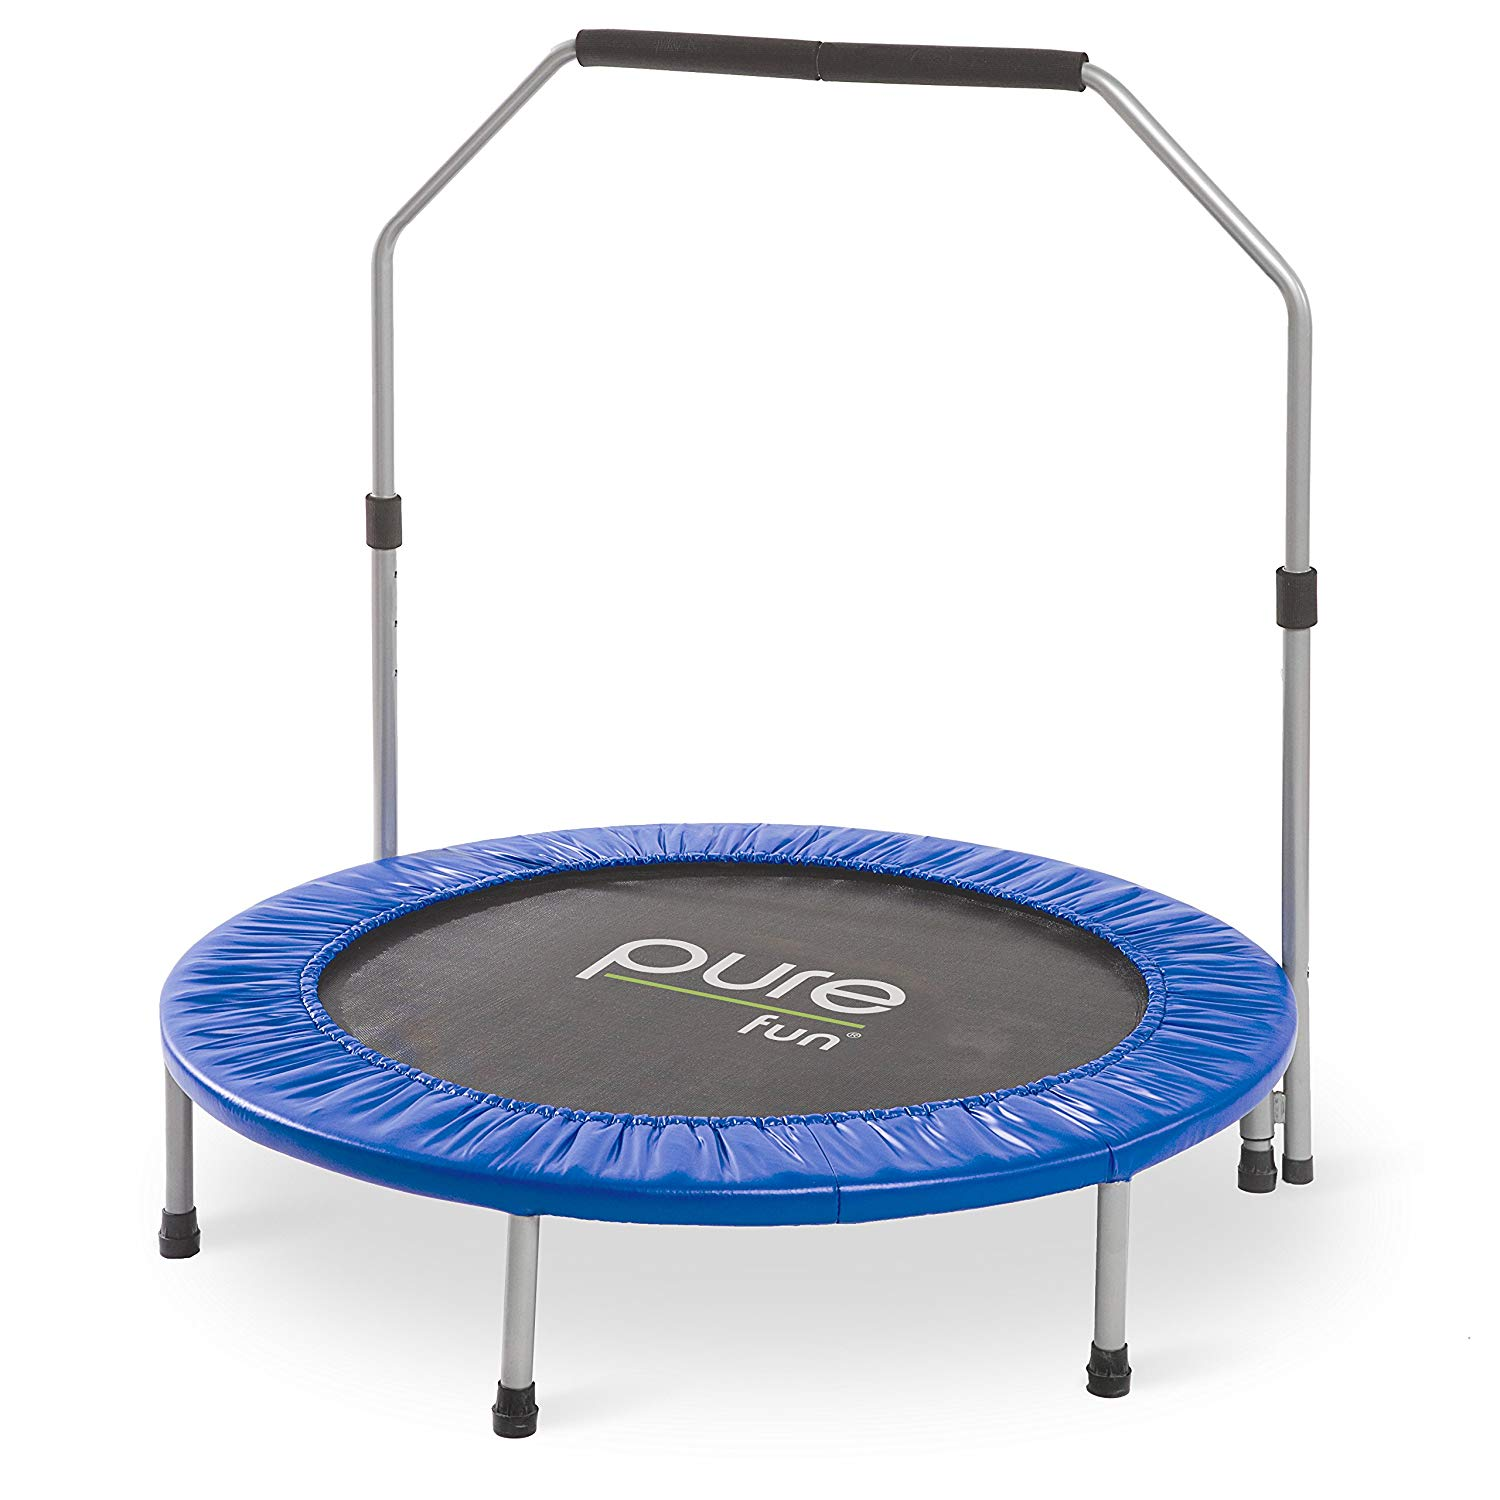 Pure Fun 40-inch Exercise Trampoline